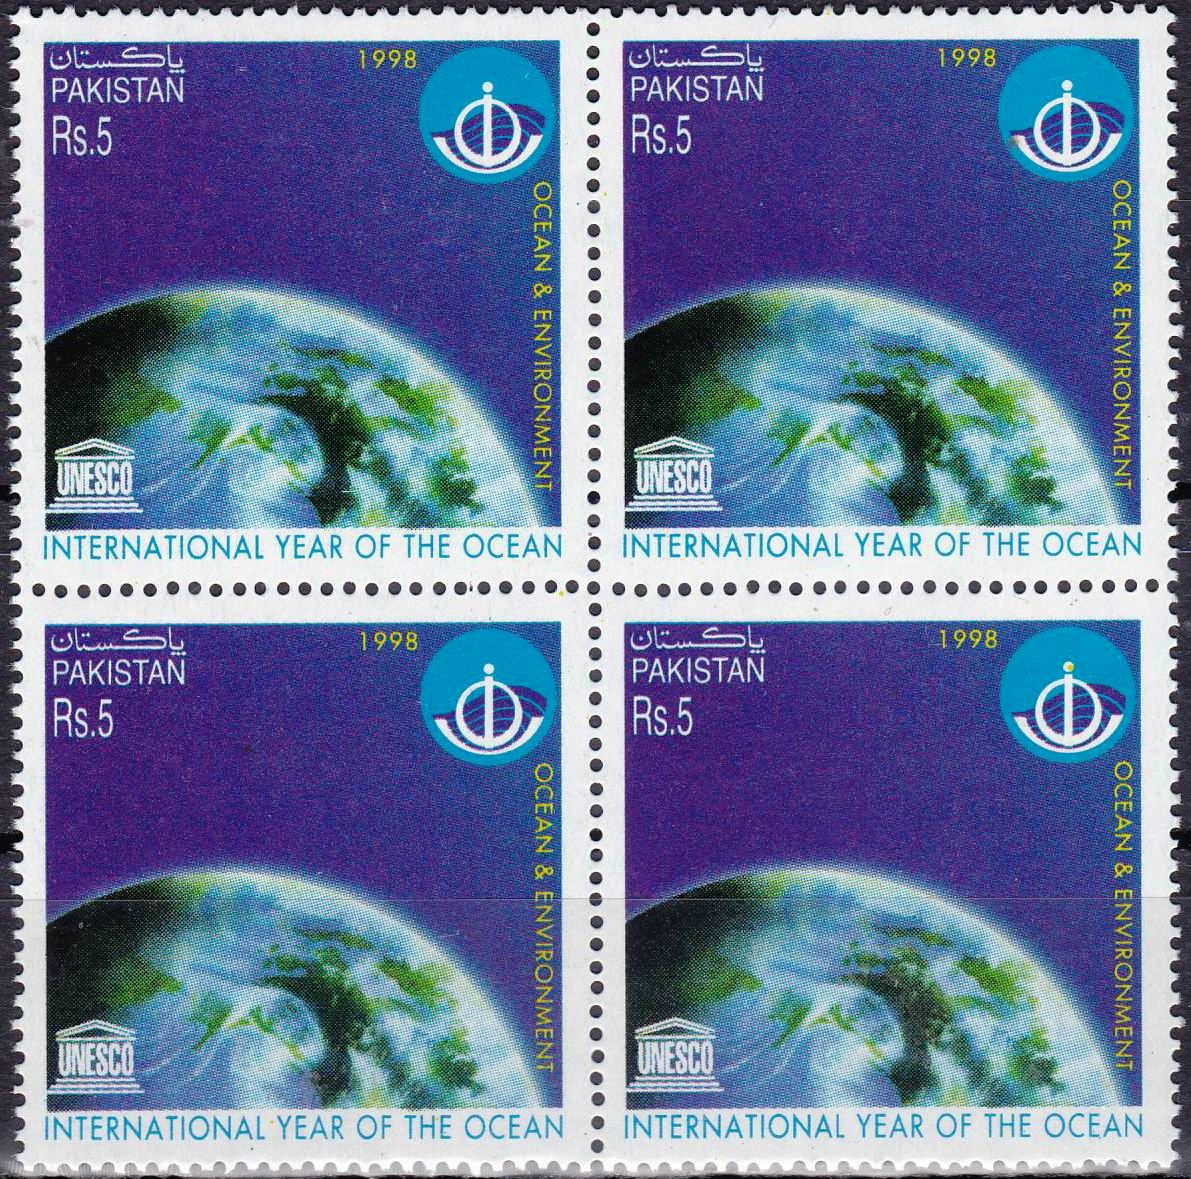 Pakistan Stamps 1998 International Year of the Ocean